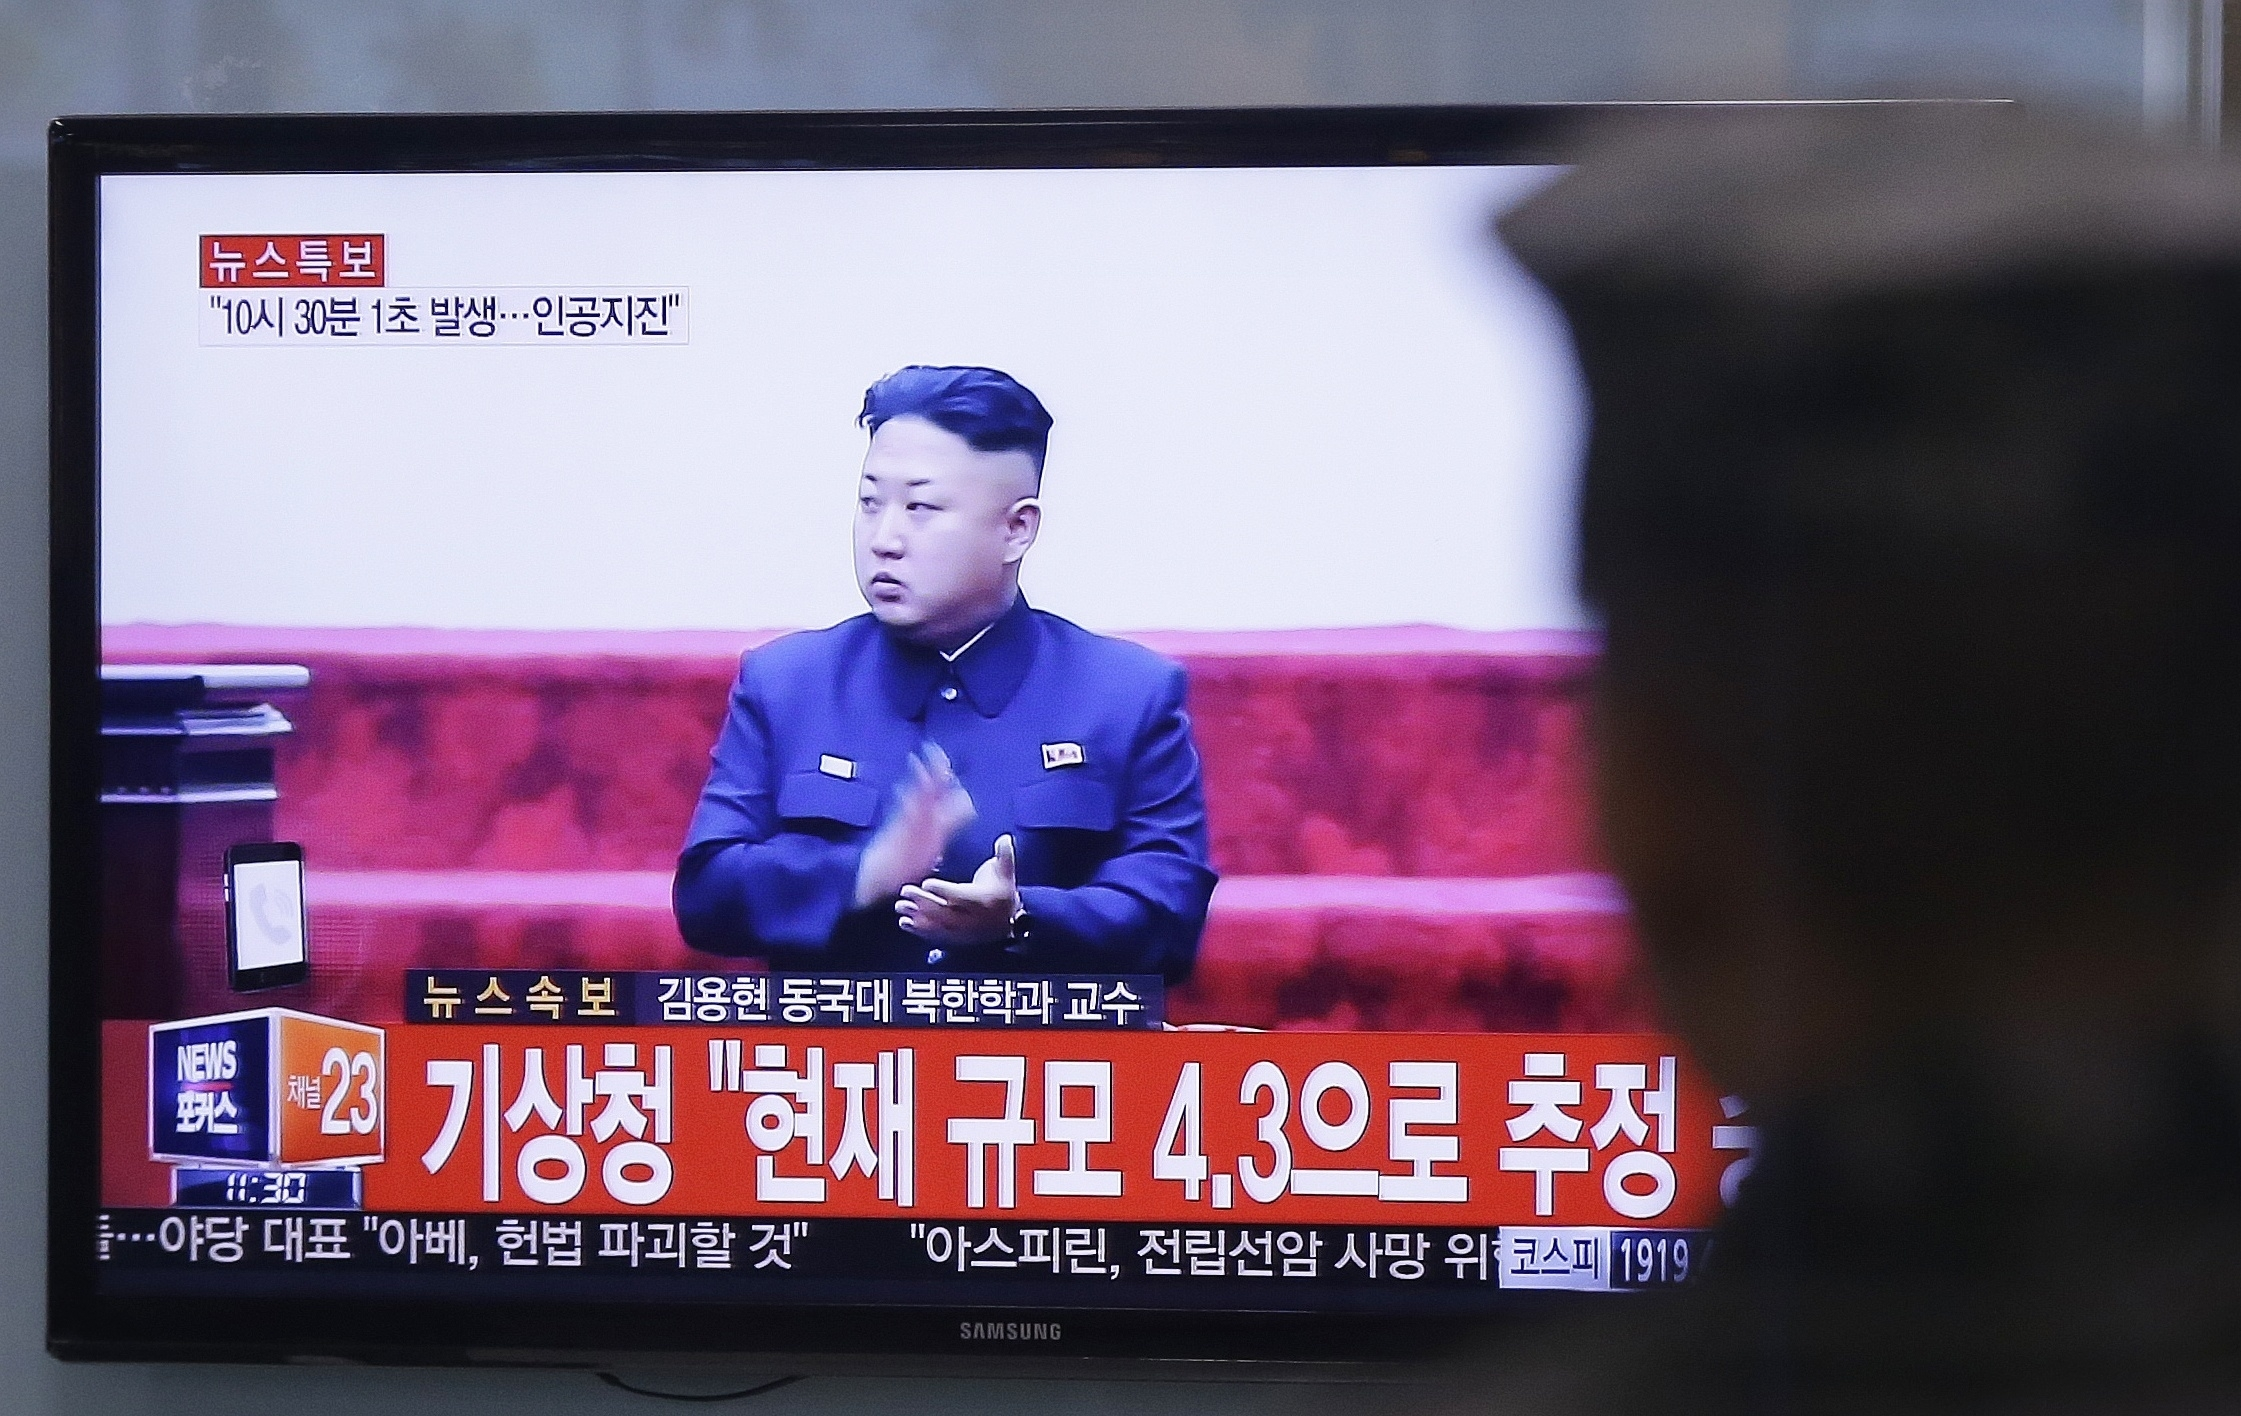 North Korea news